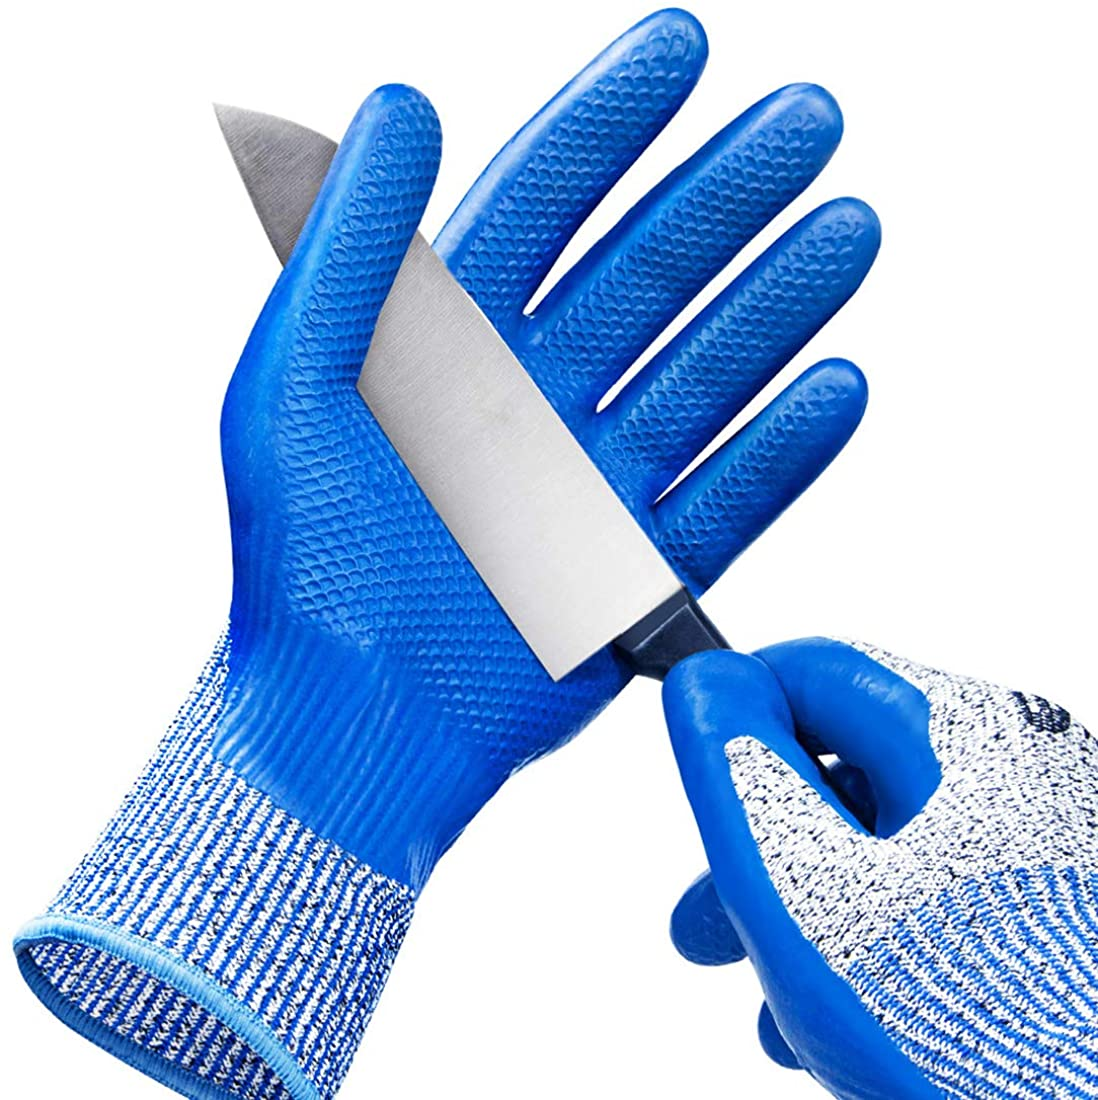 WINUSUAL Cut Resistant Gloves Level 5 Protection, Safety Cutting Gloves for Oyster Shucking,Meat cutting,Mandolin slicing